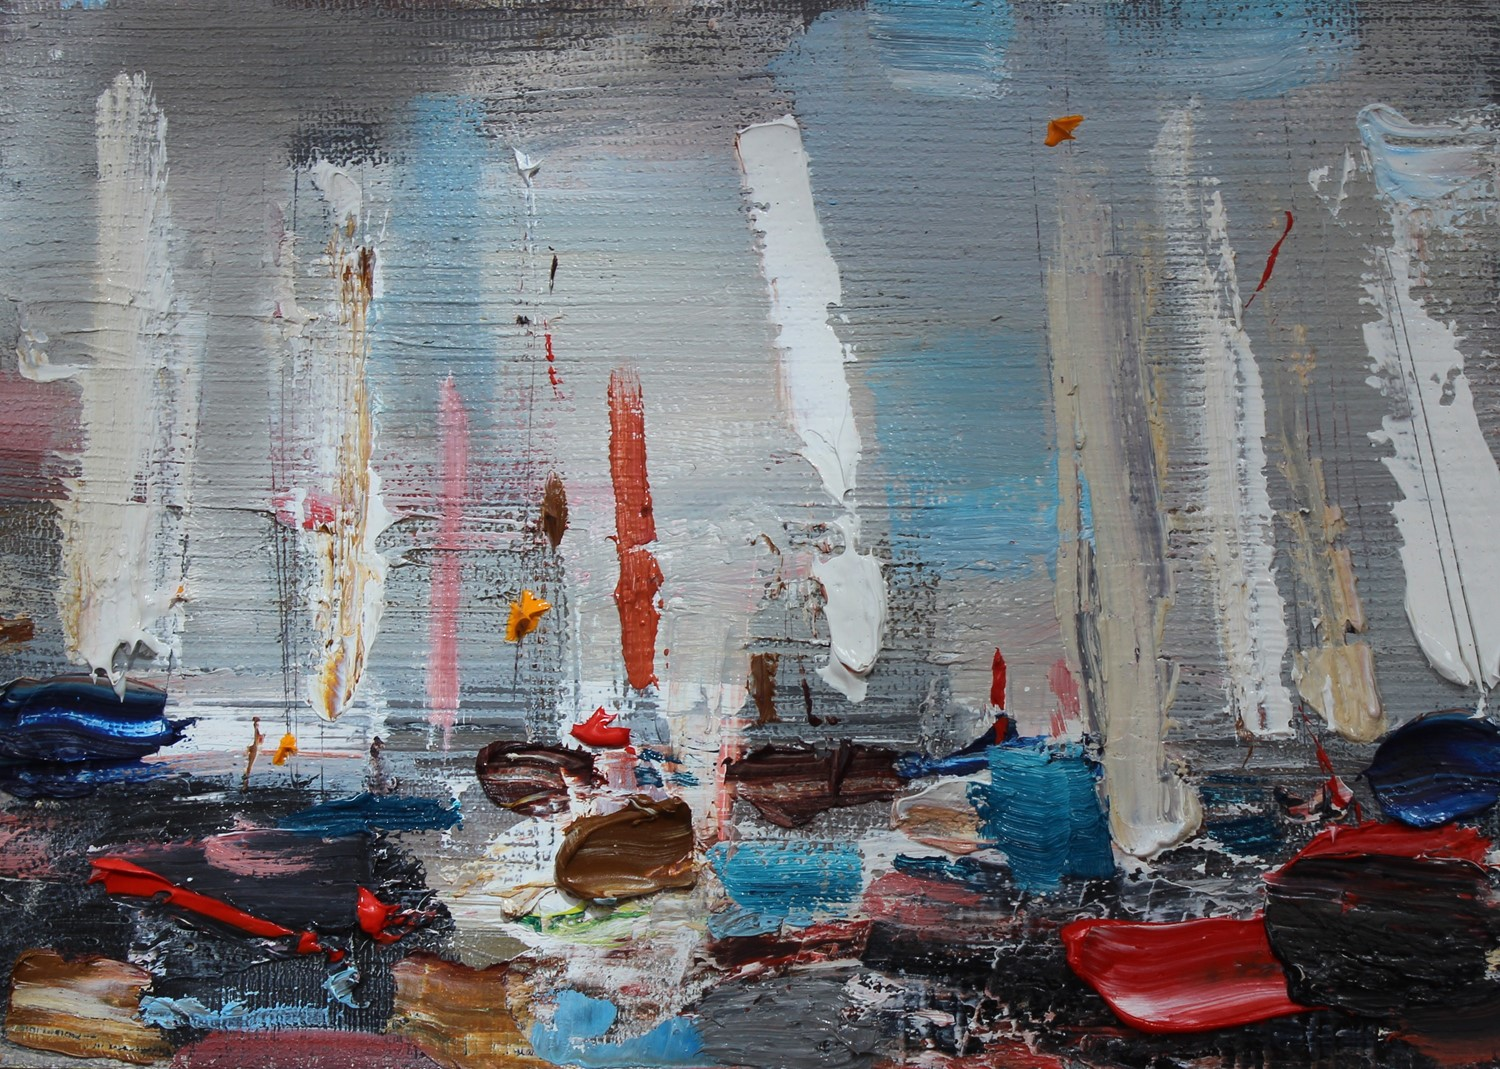 'Boats on a Grey Day' by artist Rosanne Barr